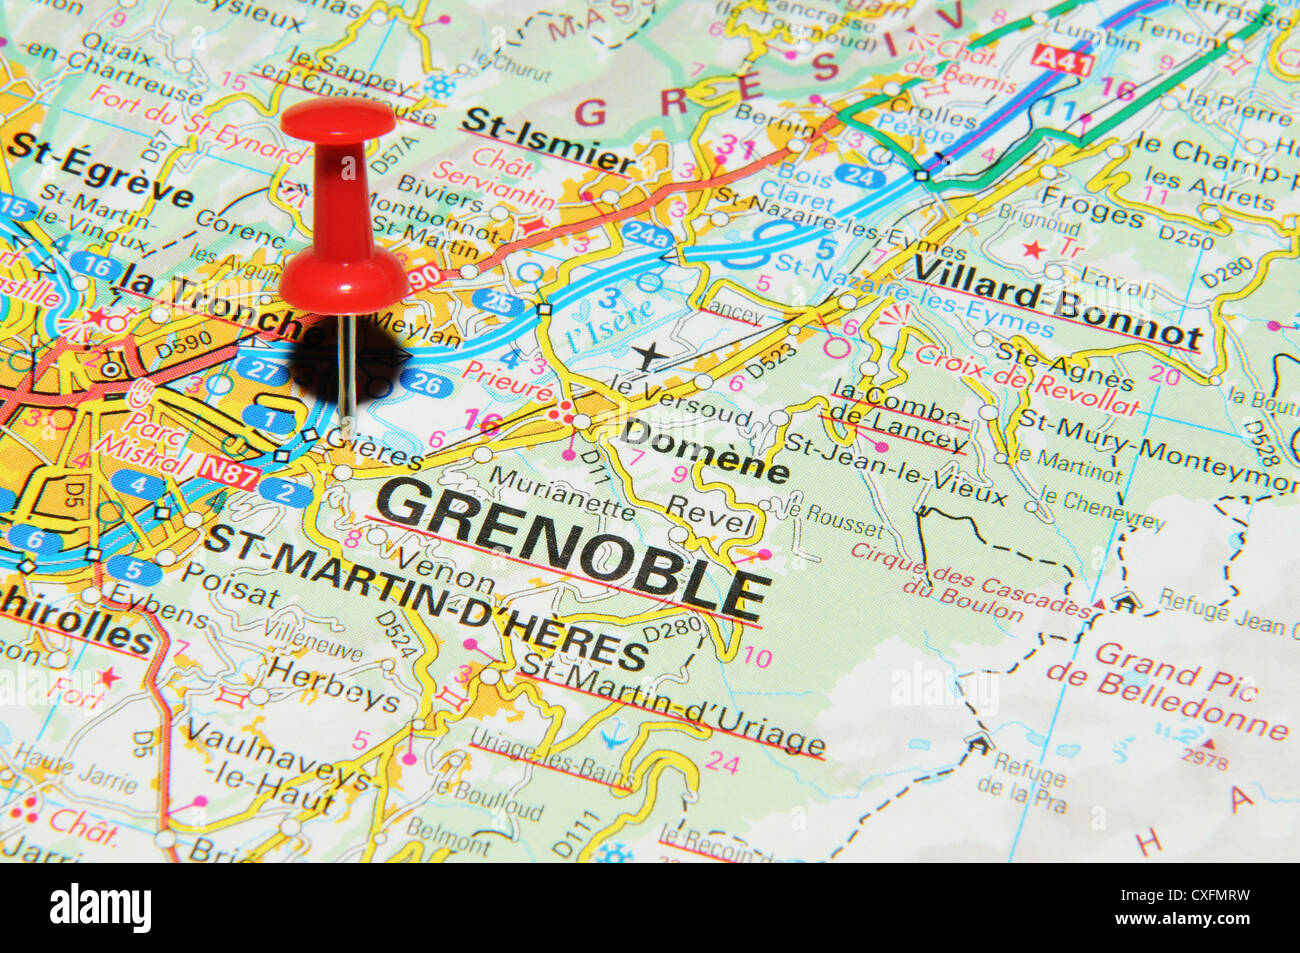 Grenoble Road Stock Photos Grenoble Road Stock Images Alamy